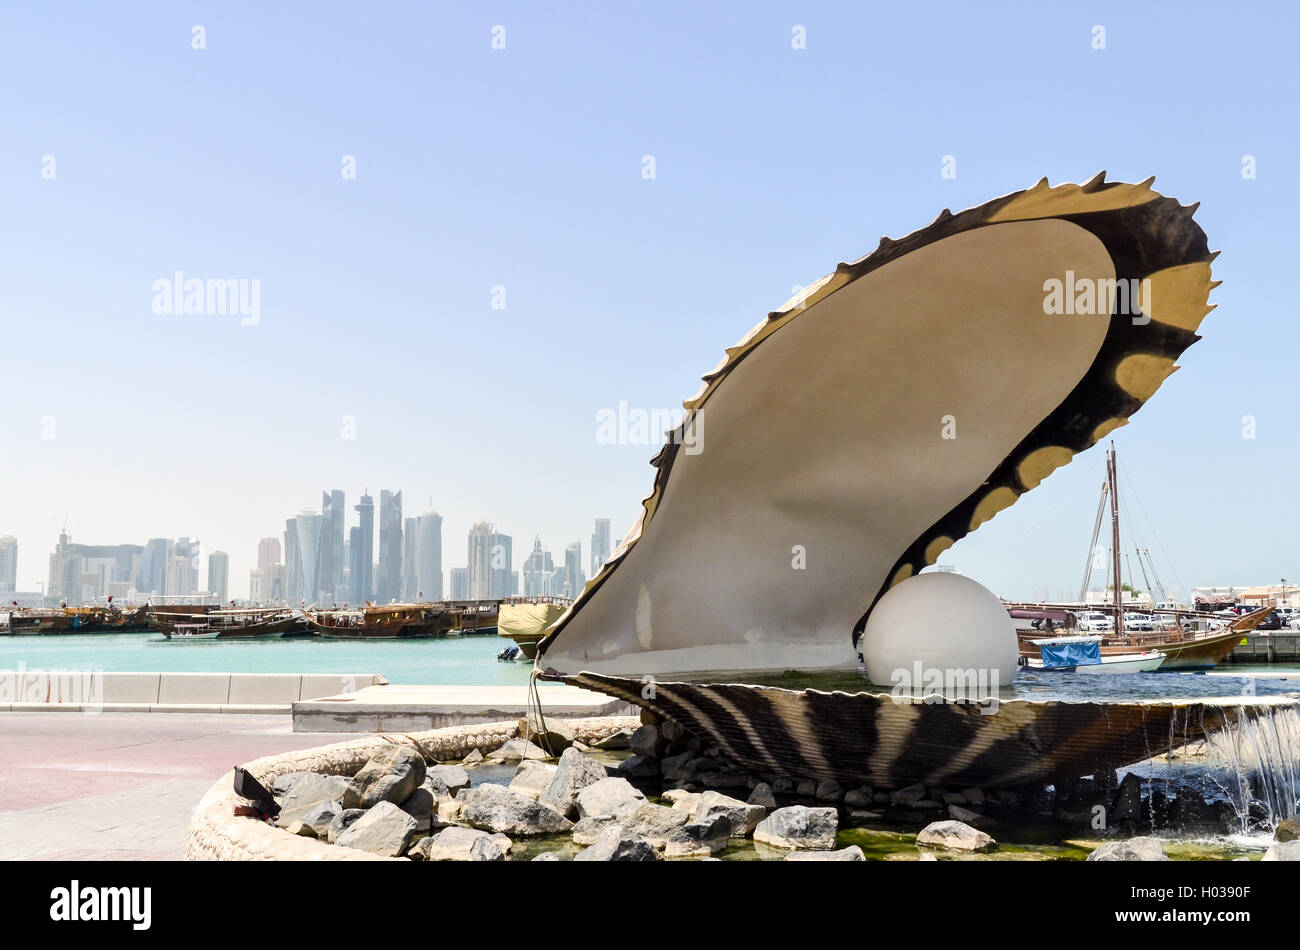 The Pearl statue, icon of Doha and Qatar - Stock Image